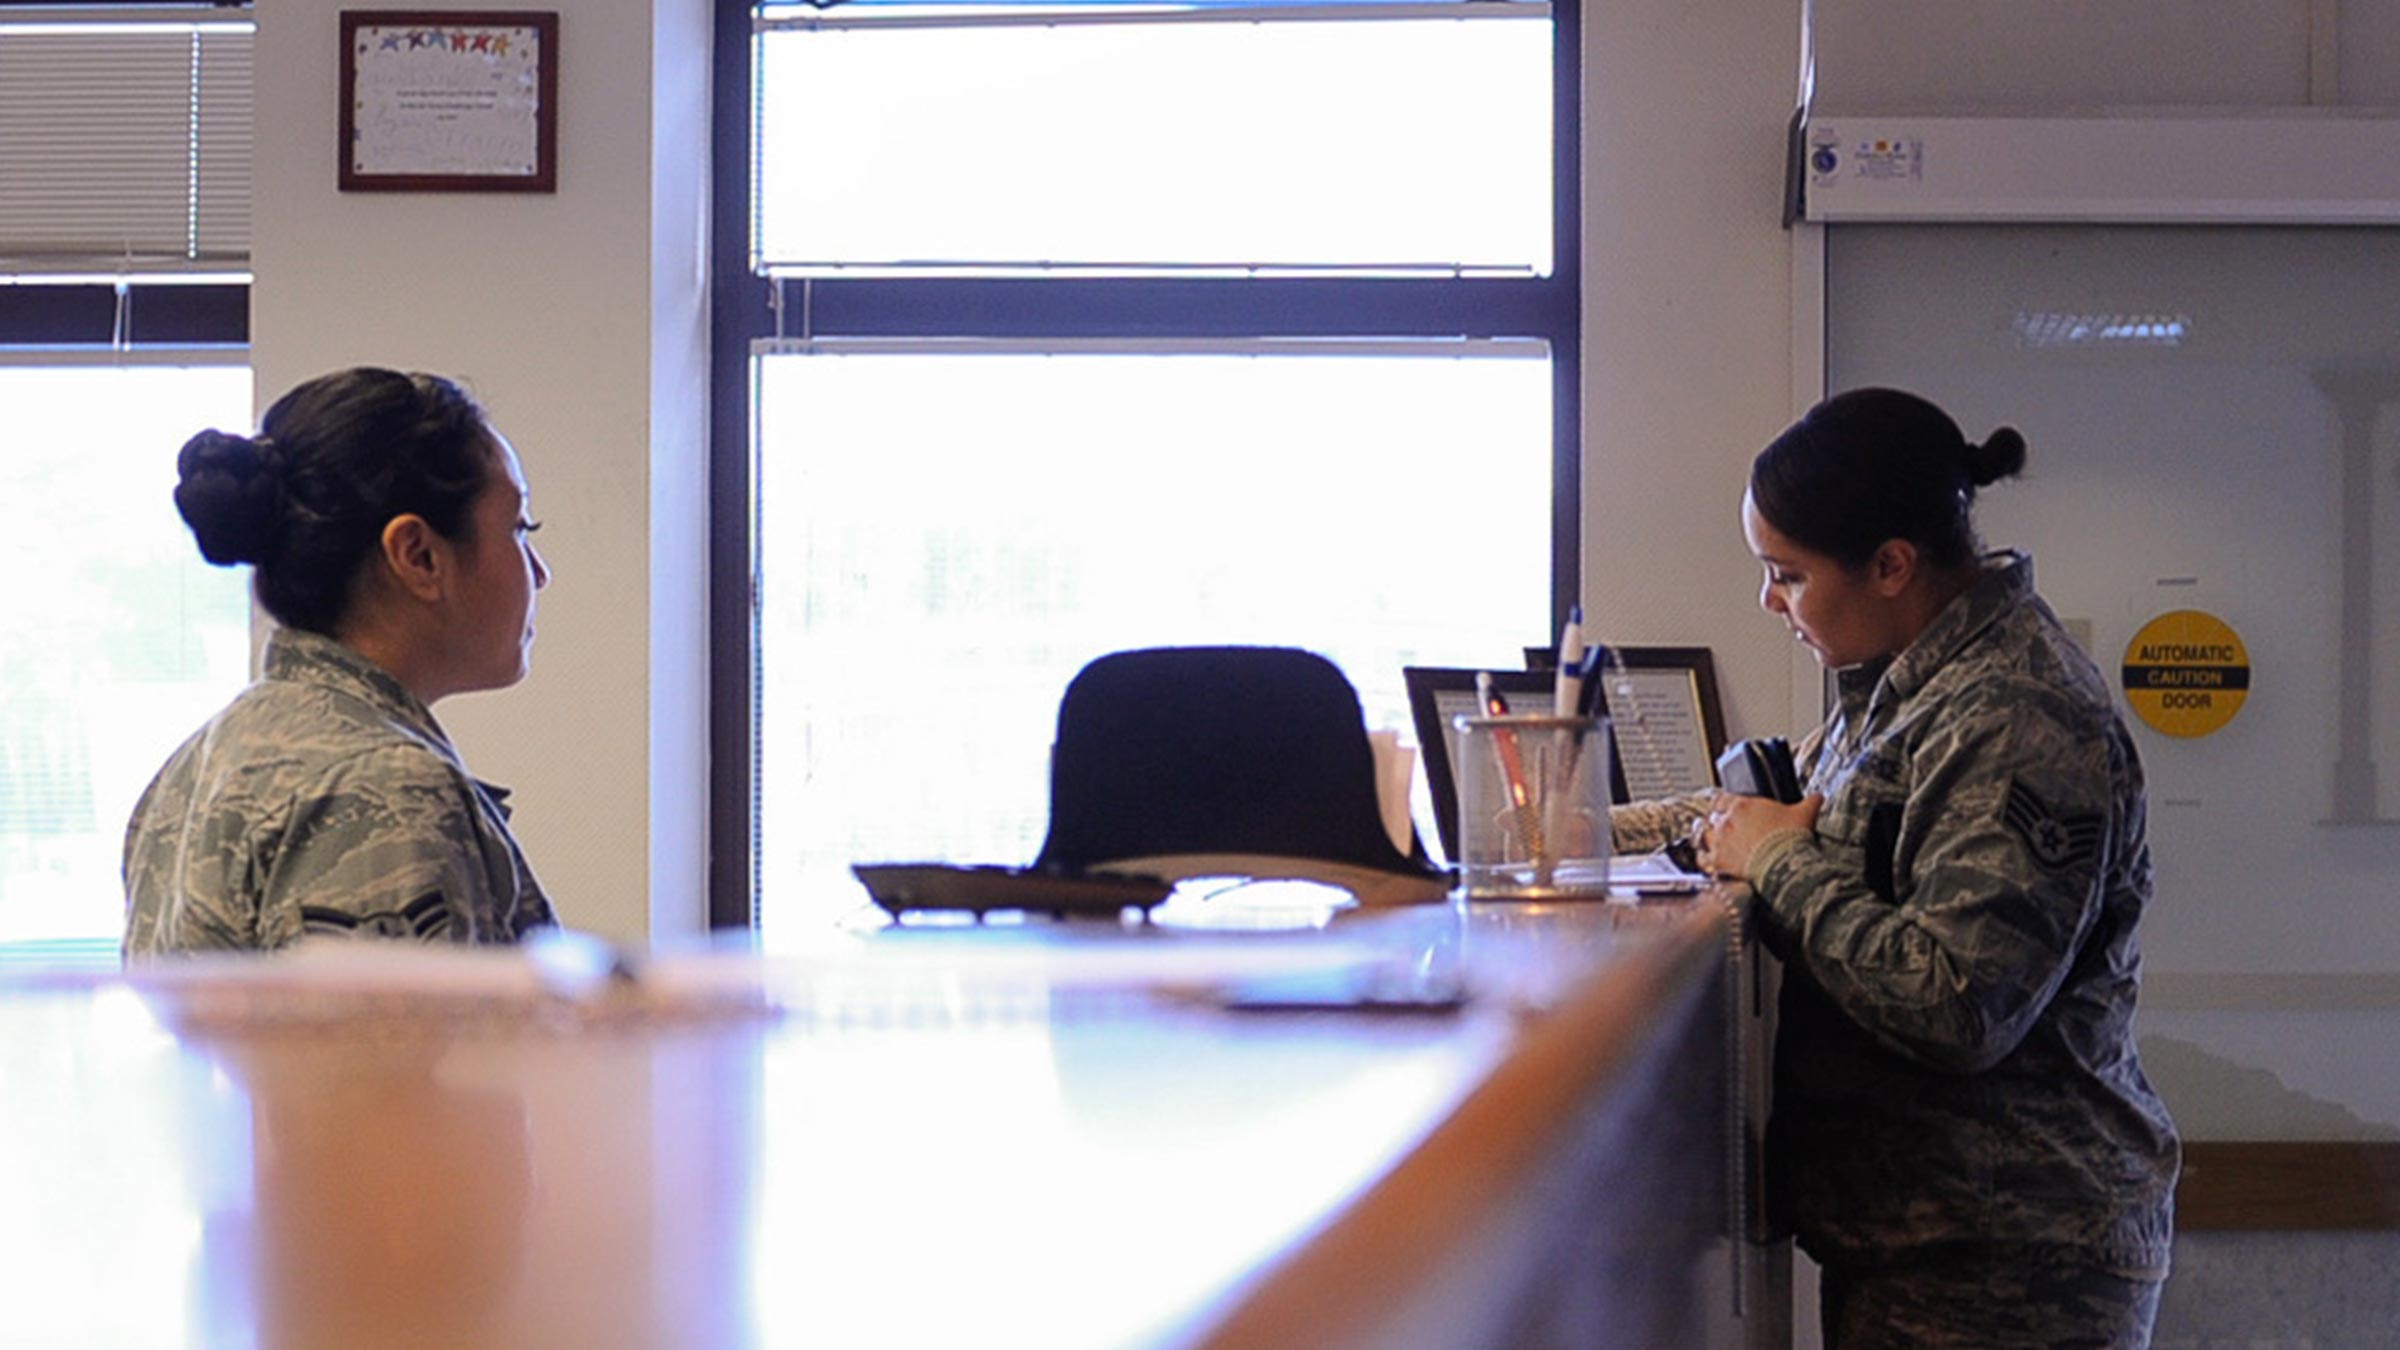 Service member helps another with paperwork.